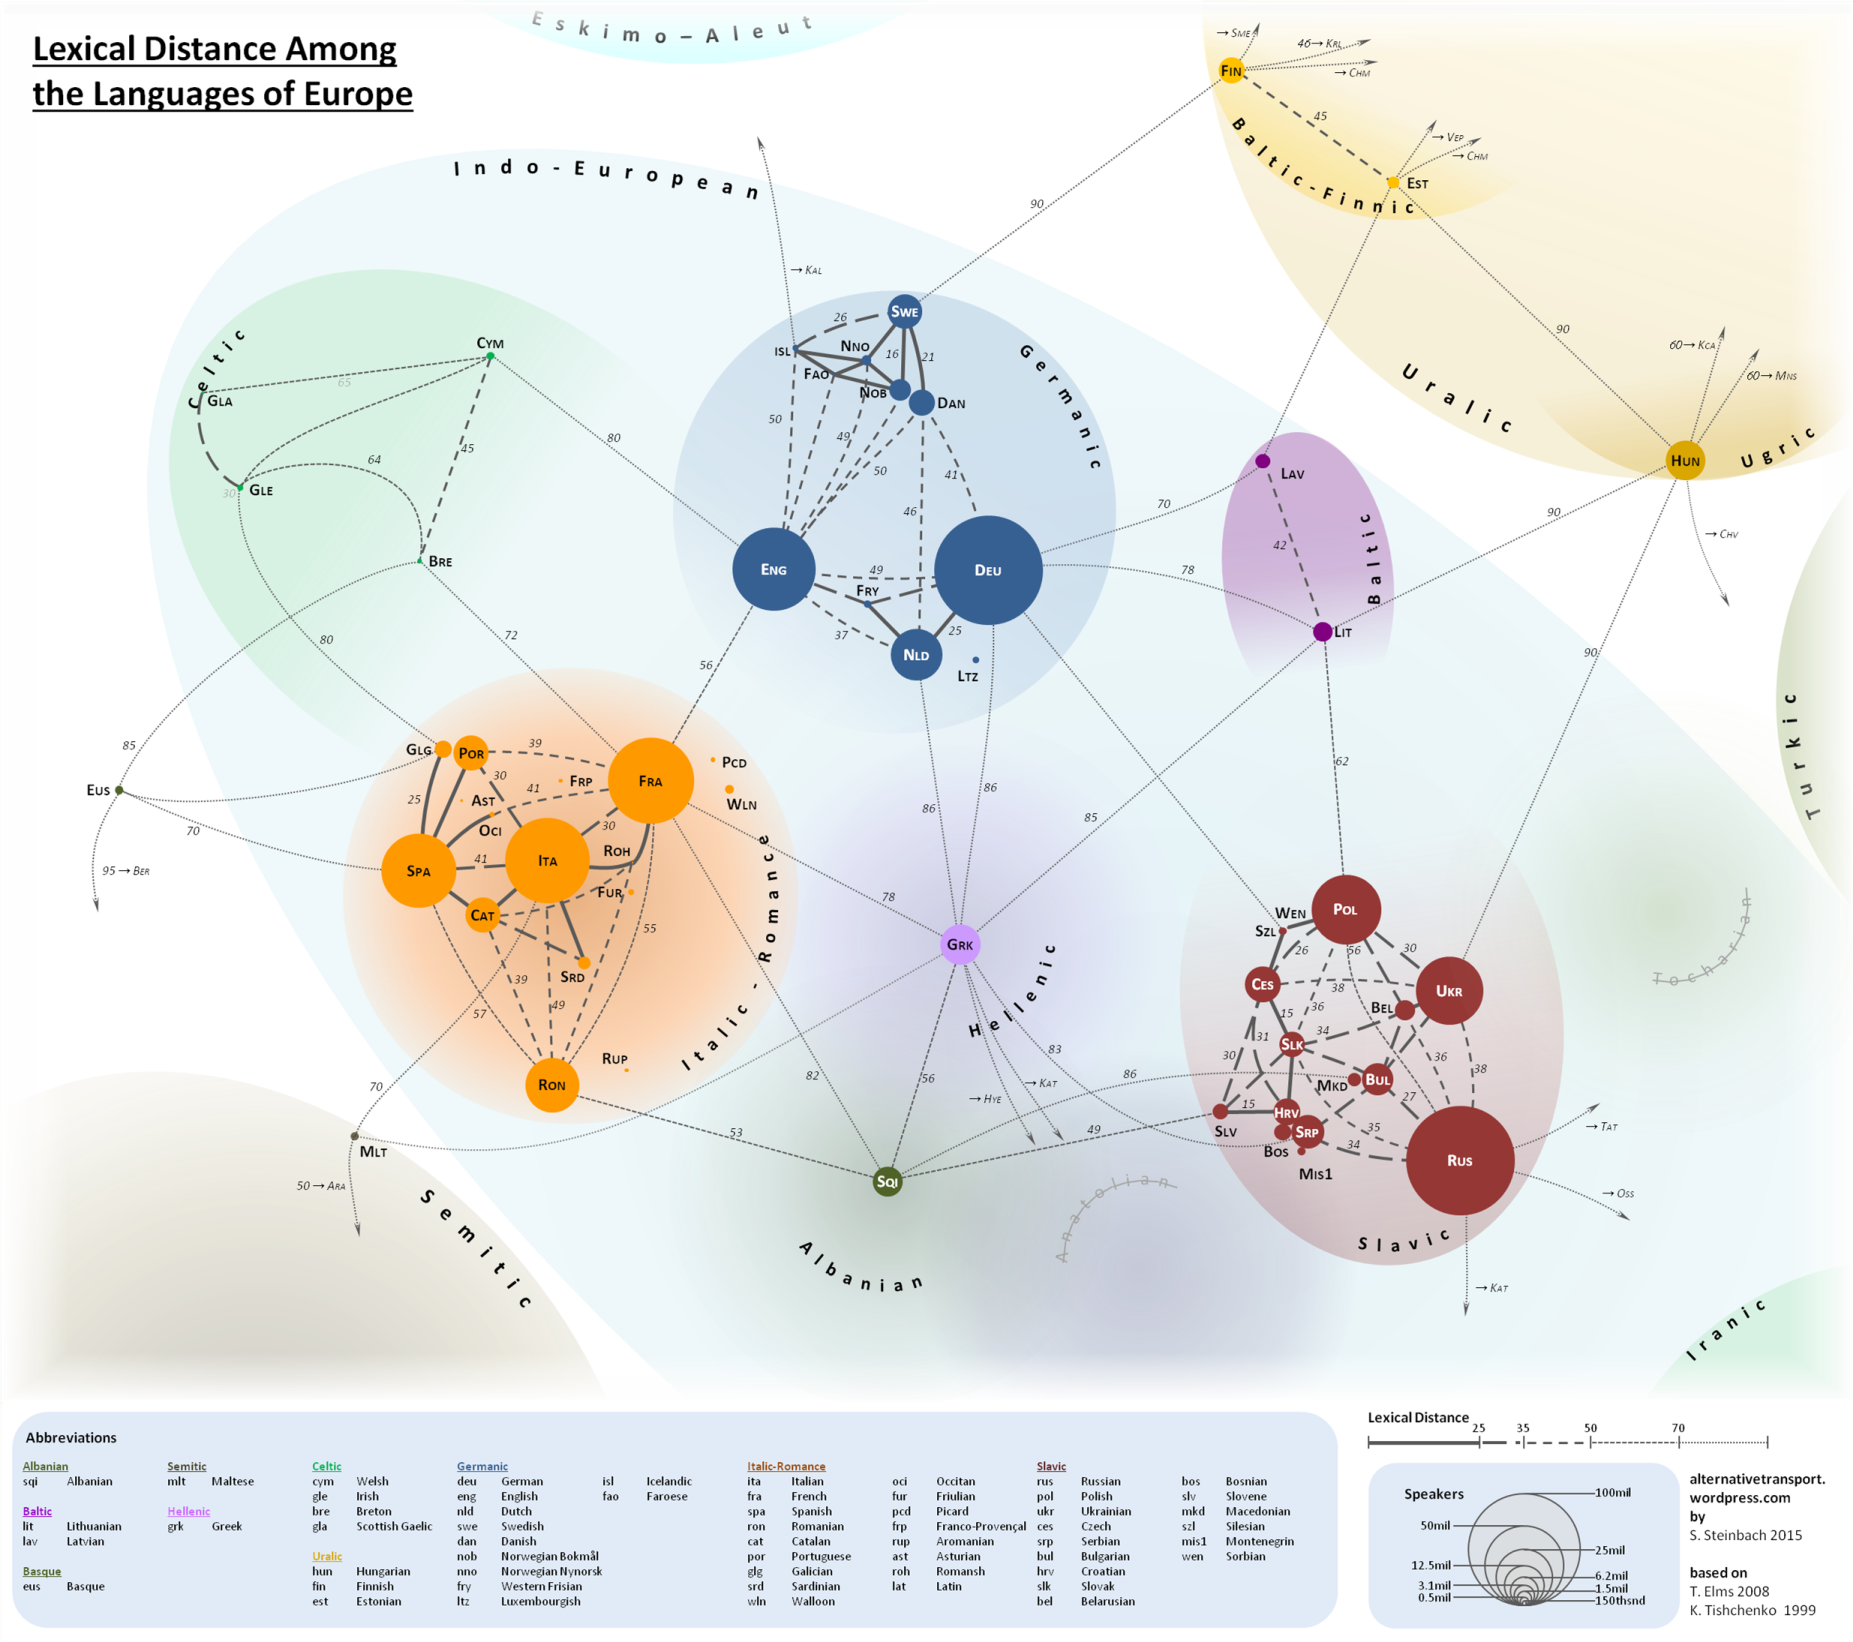 Lexical Distance Among Languages of Europe 2015